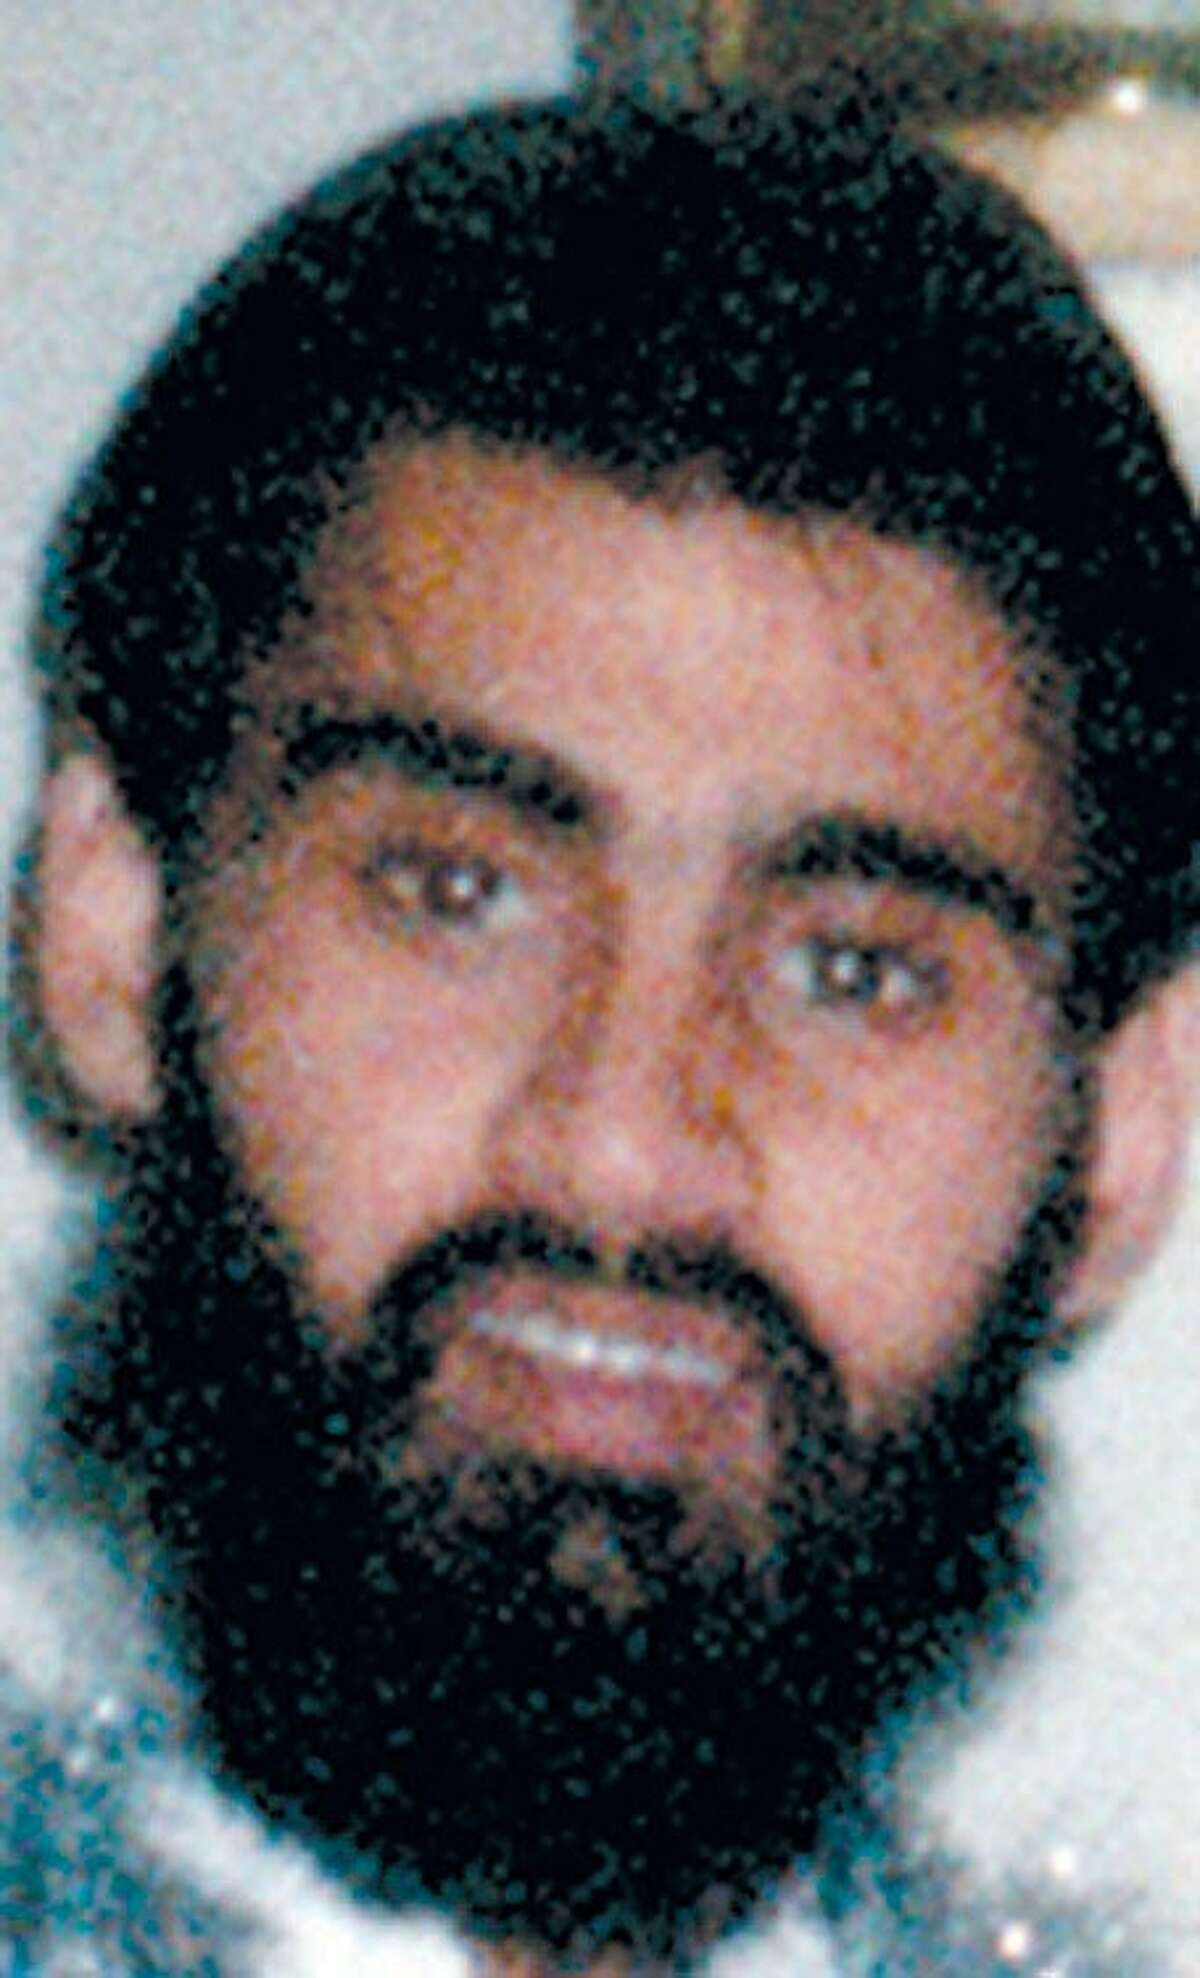 ** FILE ** This is an undated photo of Hamid Hayat provided by the Hayat family. Hayat, already being held on a terror-related charge was indicted on a more serious allegation of providing material support to terrorists Thursday, Sept. 22, 2005, after he purportedly admitted attending an al-Qaida training camp in Pakistan. (AP Photo/Hayat family via Lodi News-Sentinel, FILE)